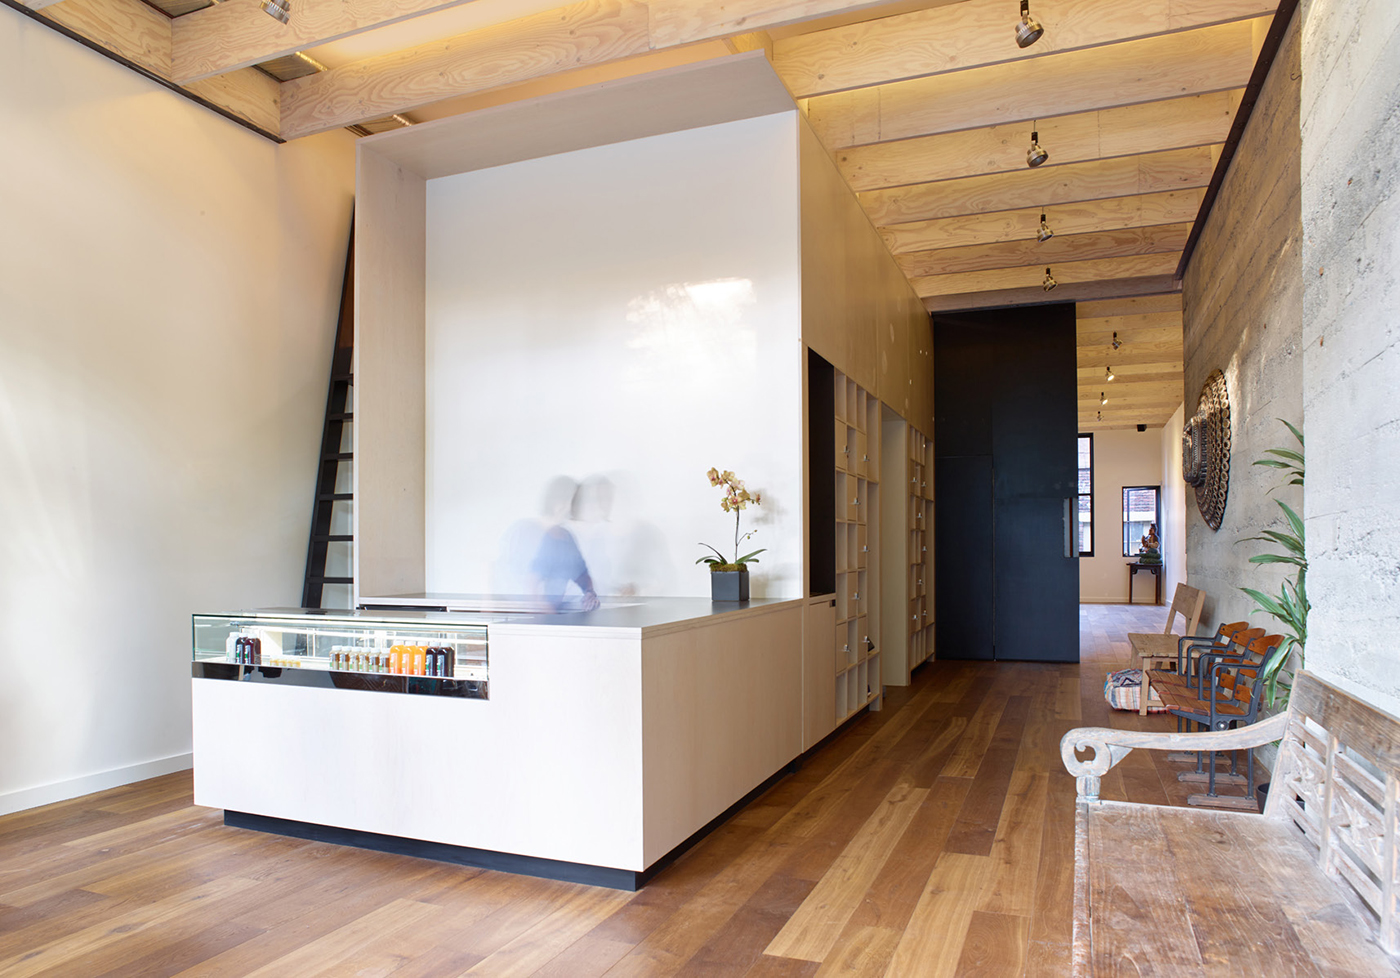 Seattle Djc Com Local Business News And Data Real Estate Modern Yoga Studio Opens In Century Old Building